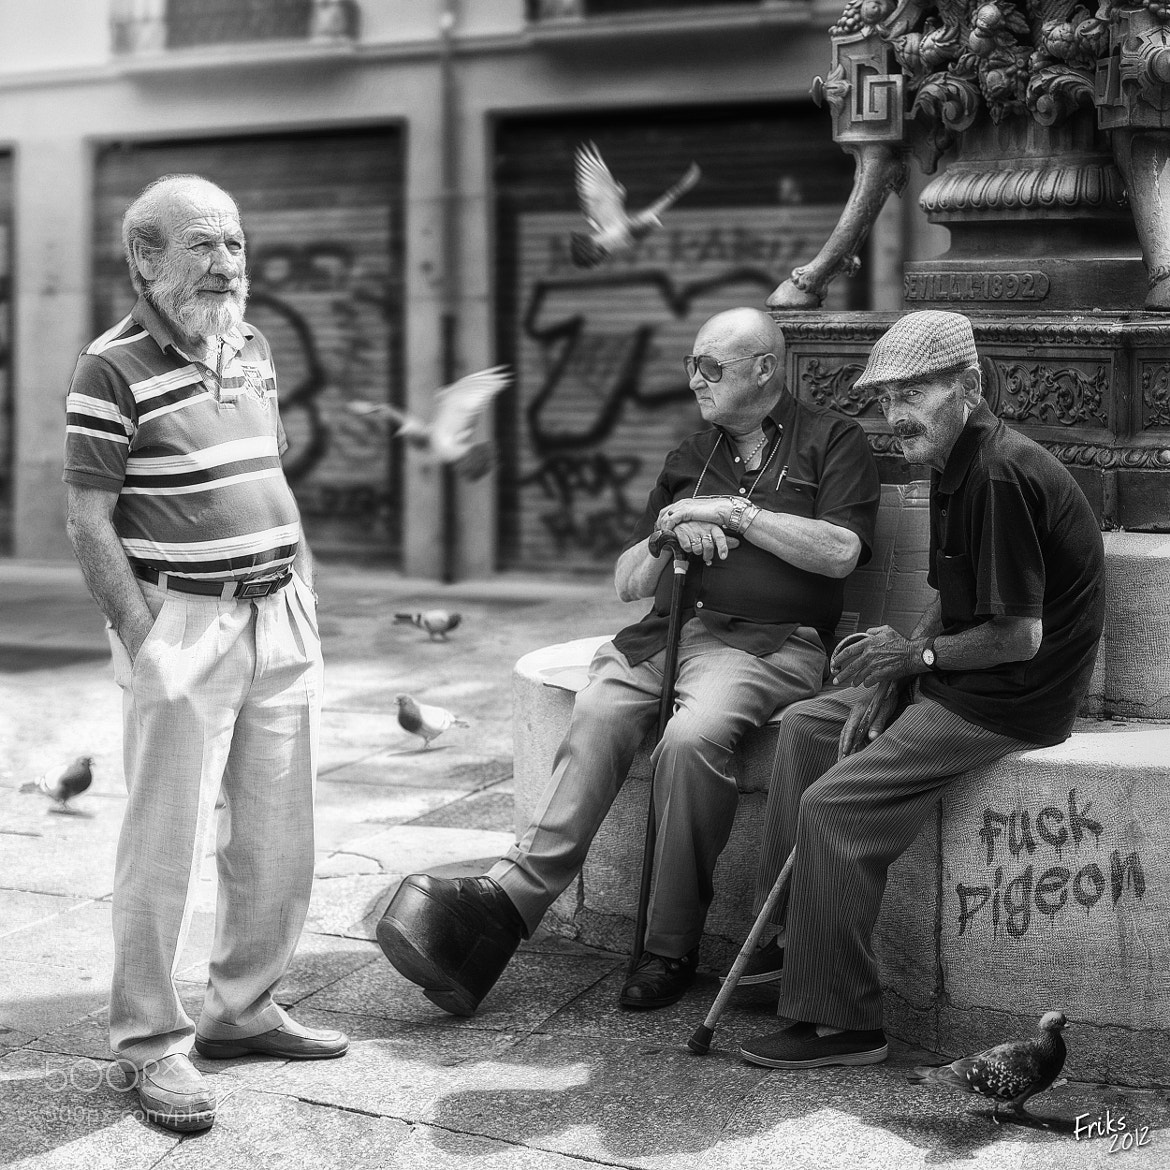 Photograph OF PIGEONS AND MEN by Mr Friks on 500px